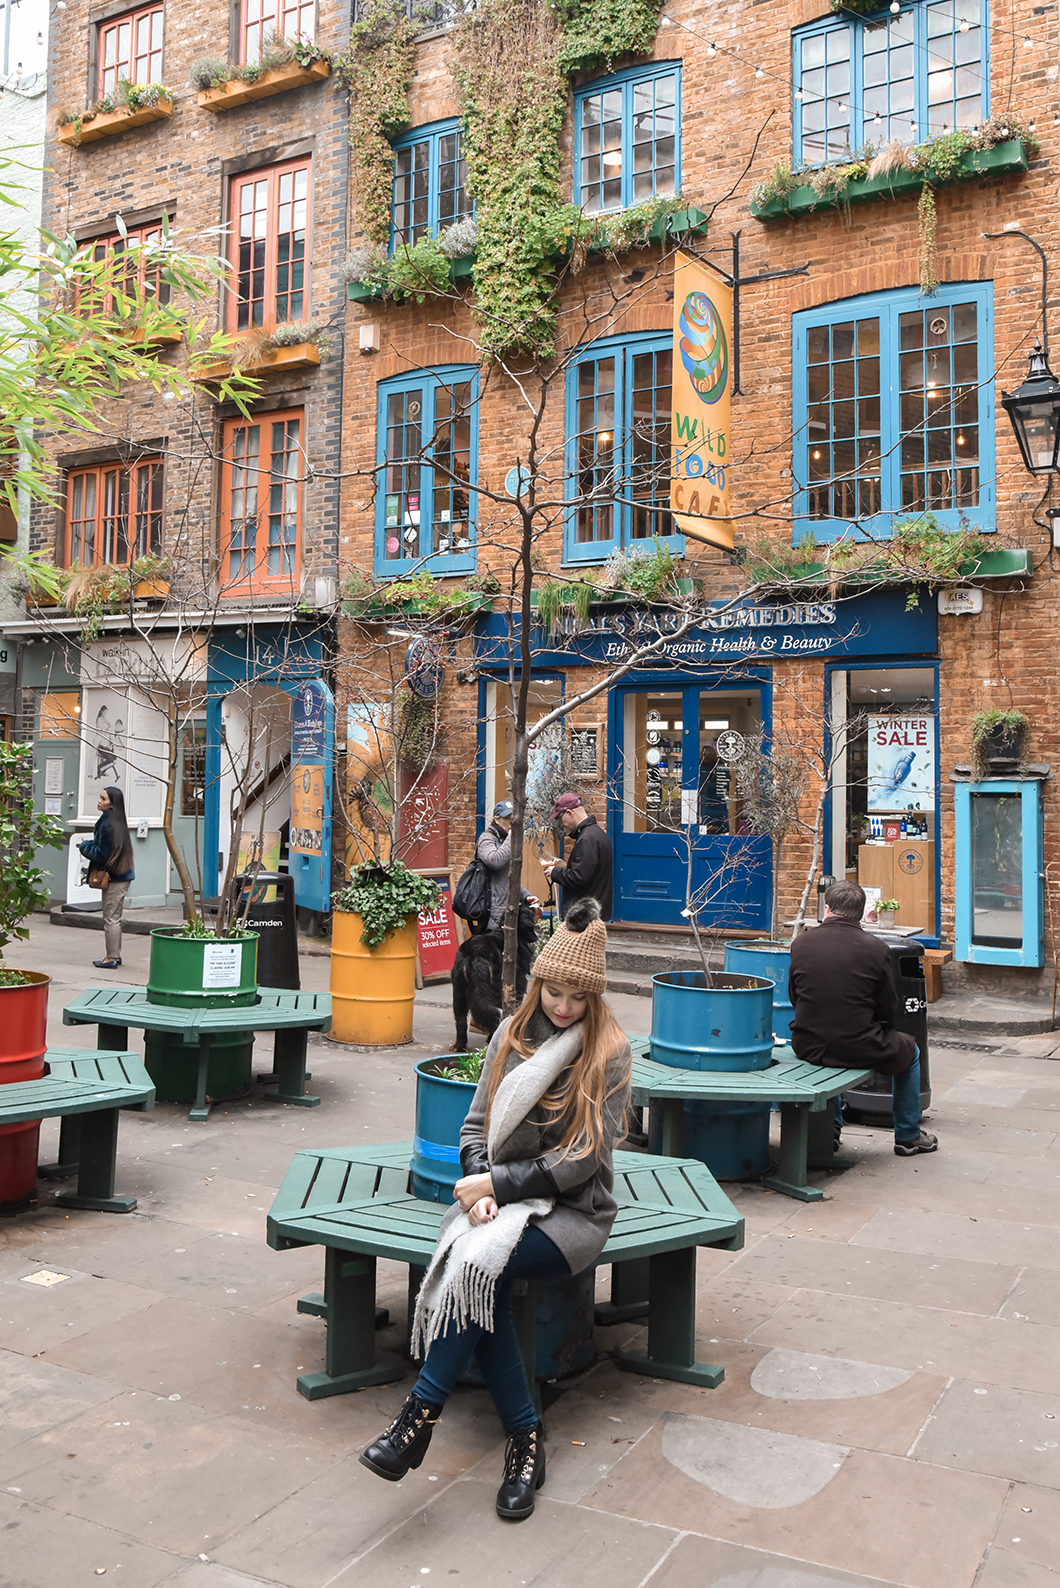 Neal's Yard, 10 endroits insolites à Londres